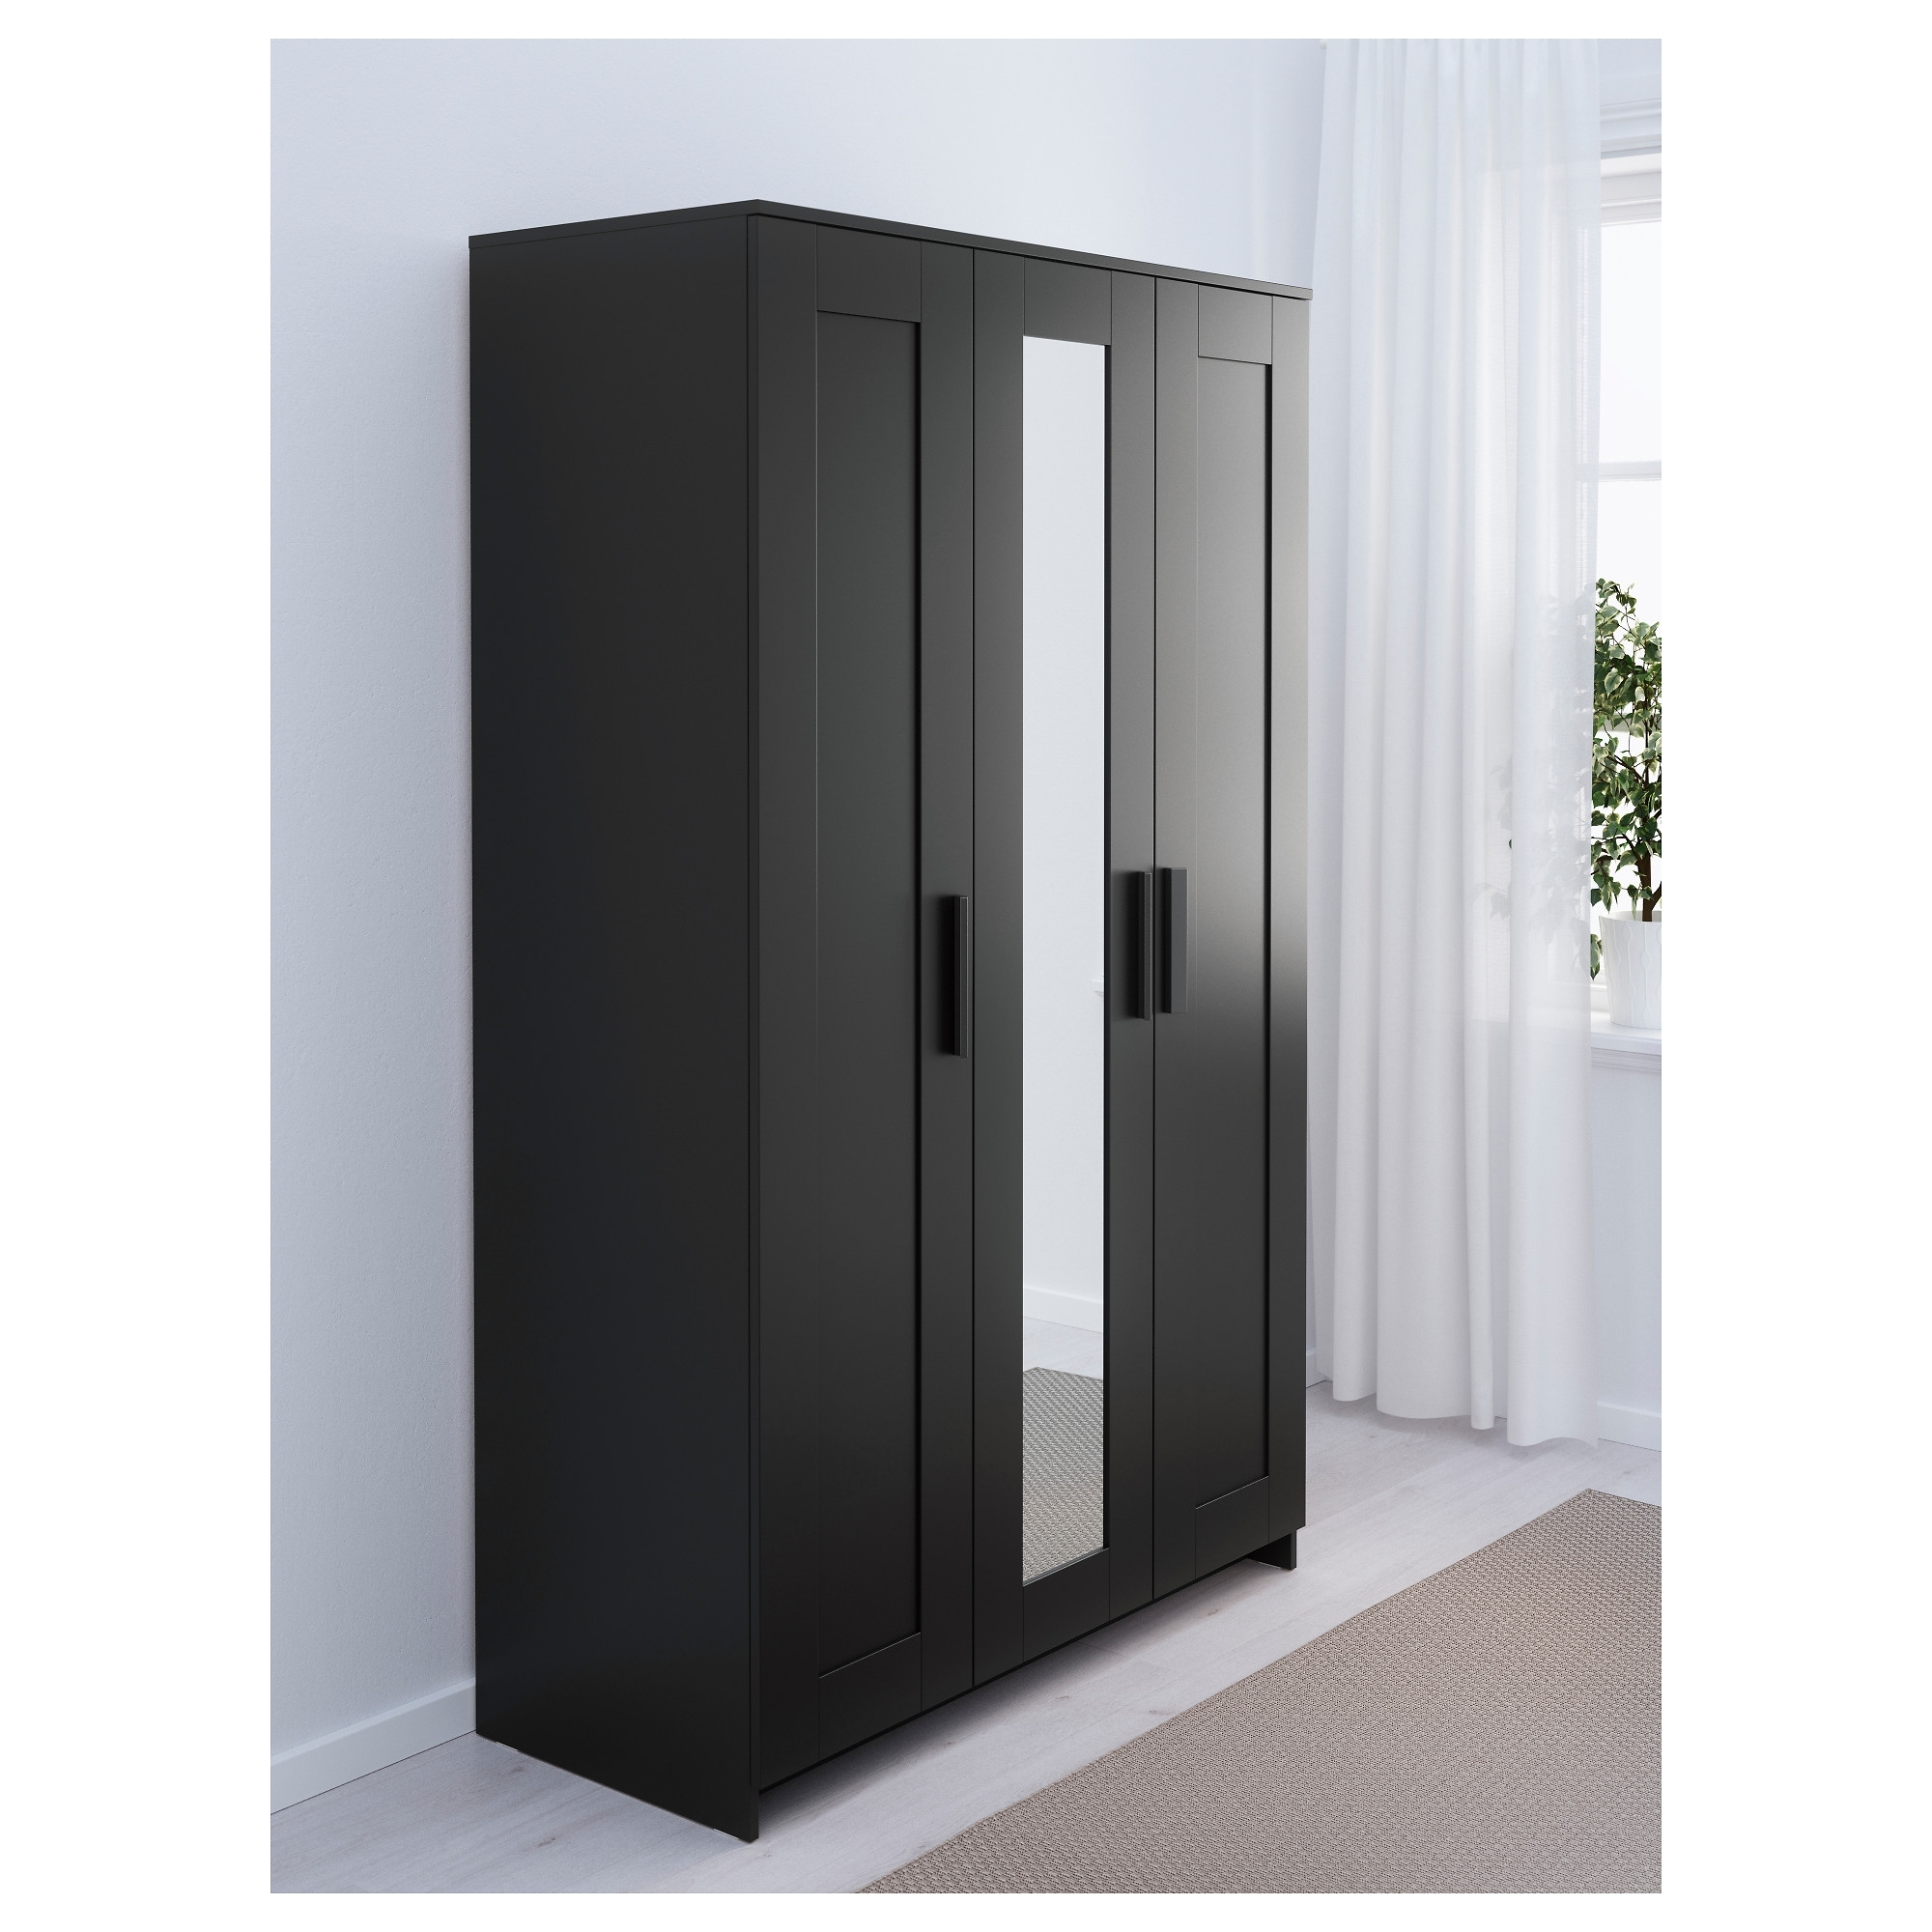 Three Door Wardrobes With Mirror Within 2018 Brimnes Wardrobe With 3 Doors – White – Ikea (Gallery 2 of 15)